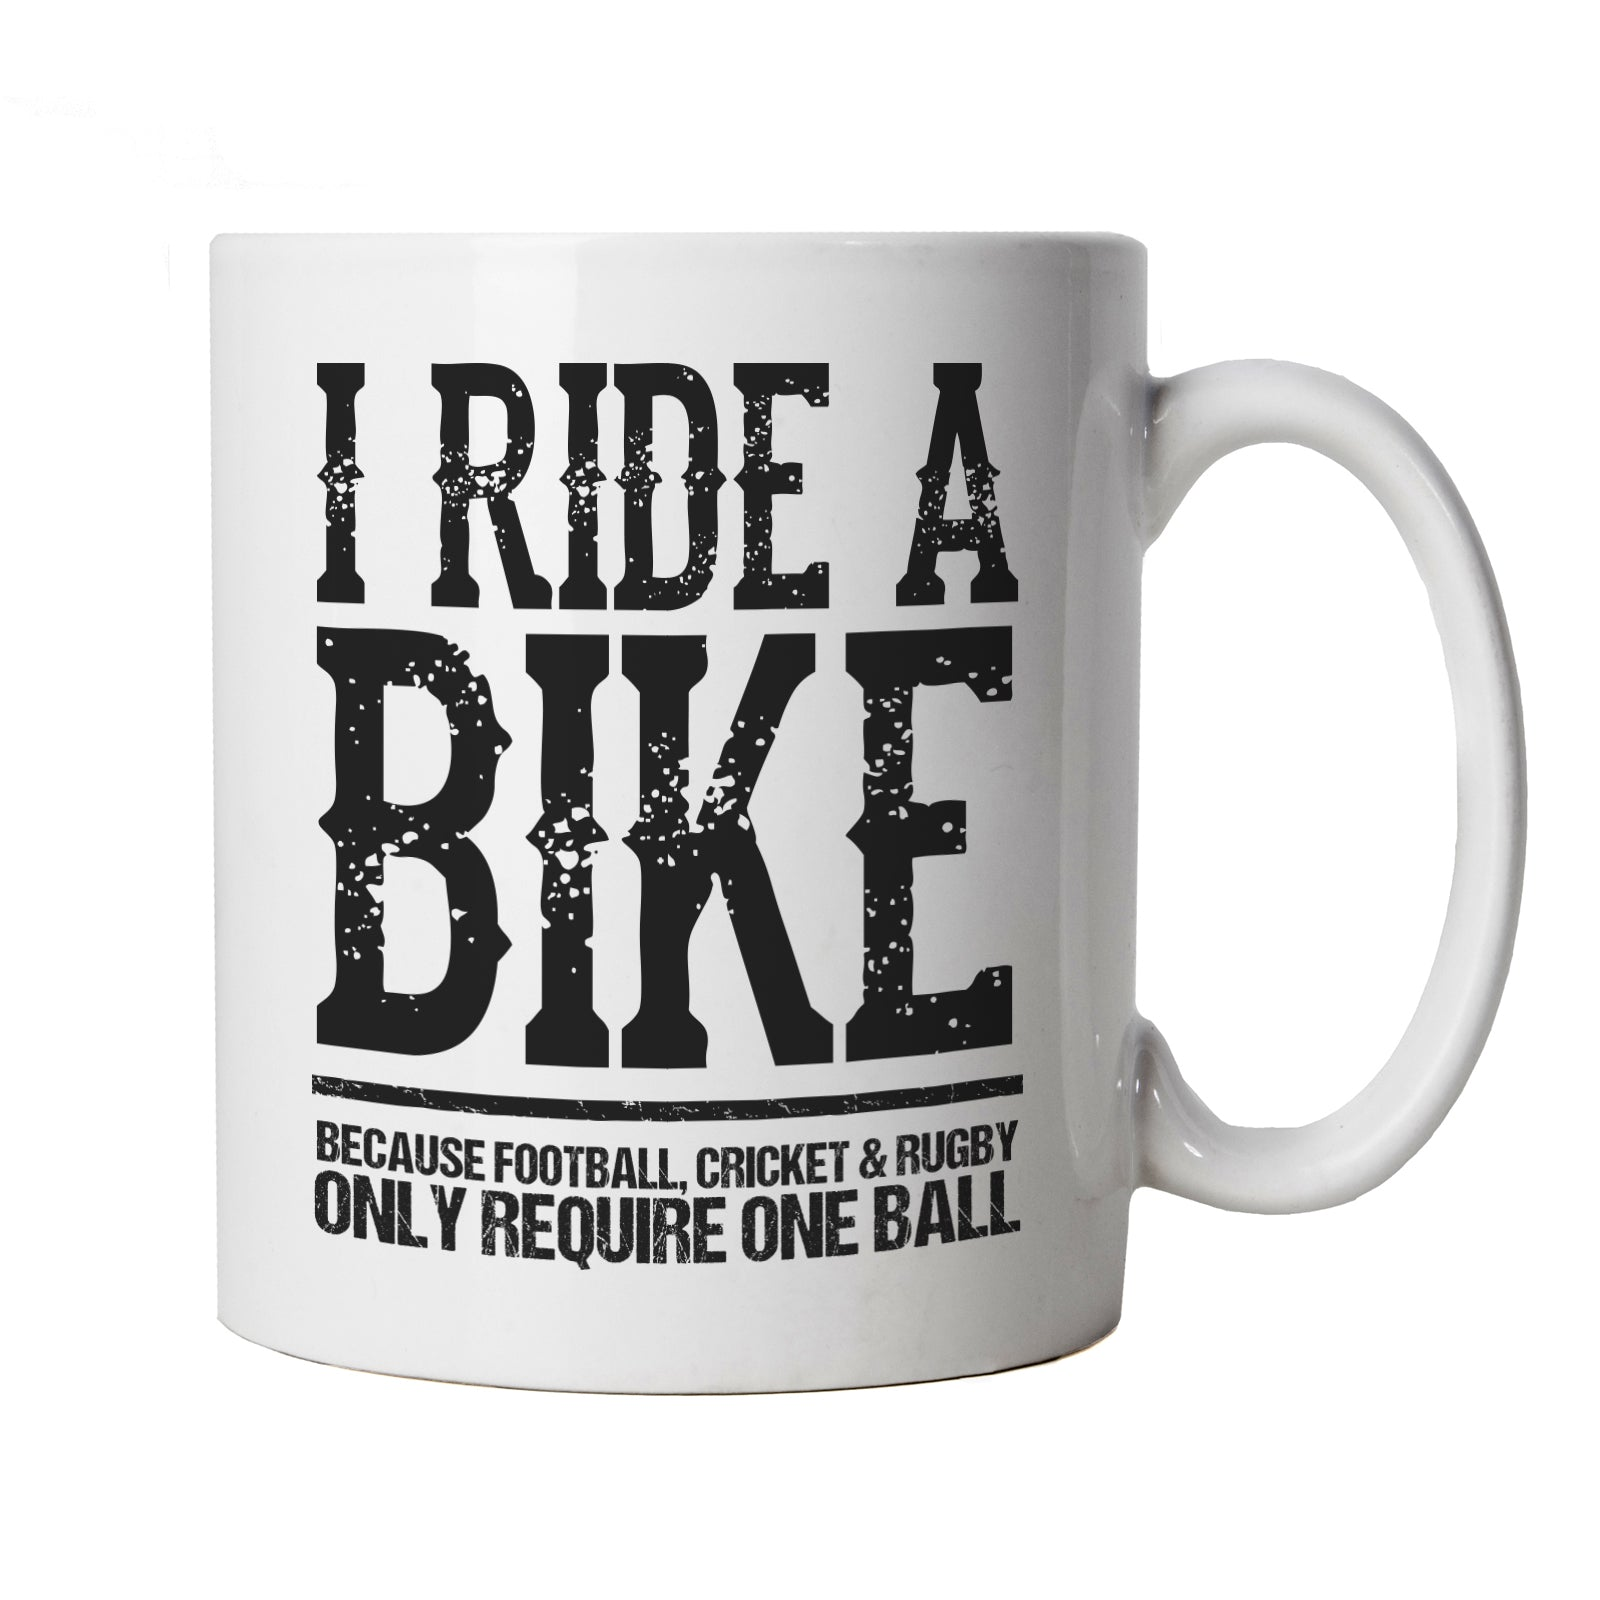 I Ride A-Bike Funny Biker Cycling, Mug | MTB Mountain Bike Downhill Gravel Bike Cylo | Moto-X Dirt Bike Jump Stunt Throttle Lift Big Air | Cycling Motorbikes Cup Gift